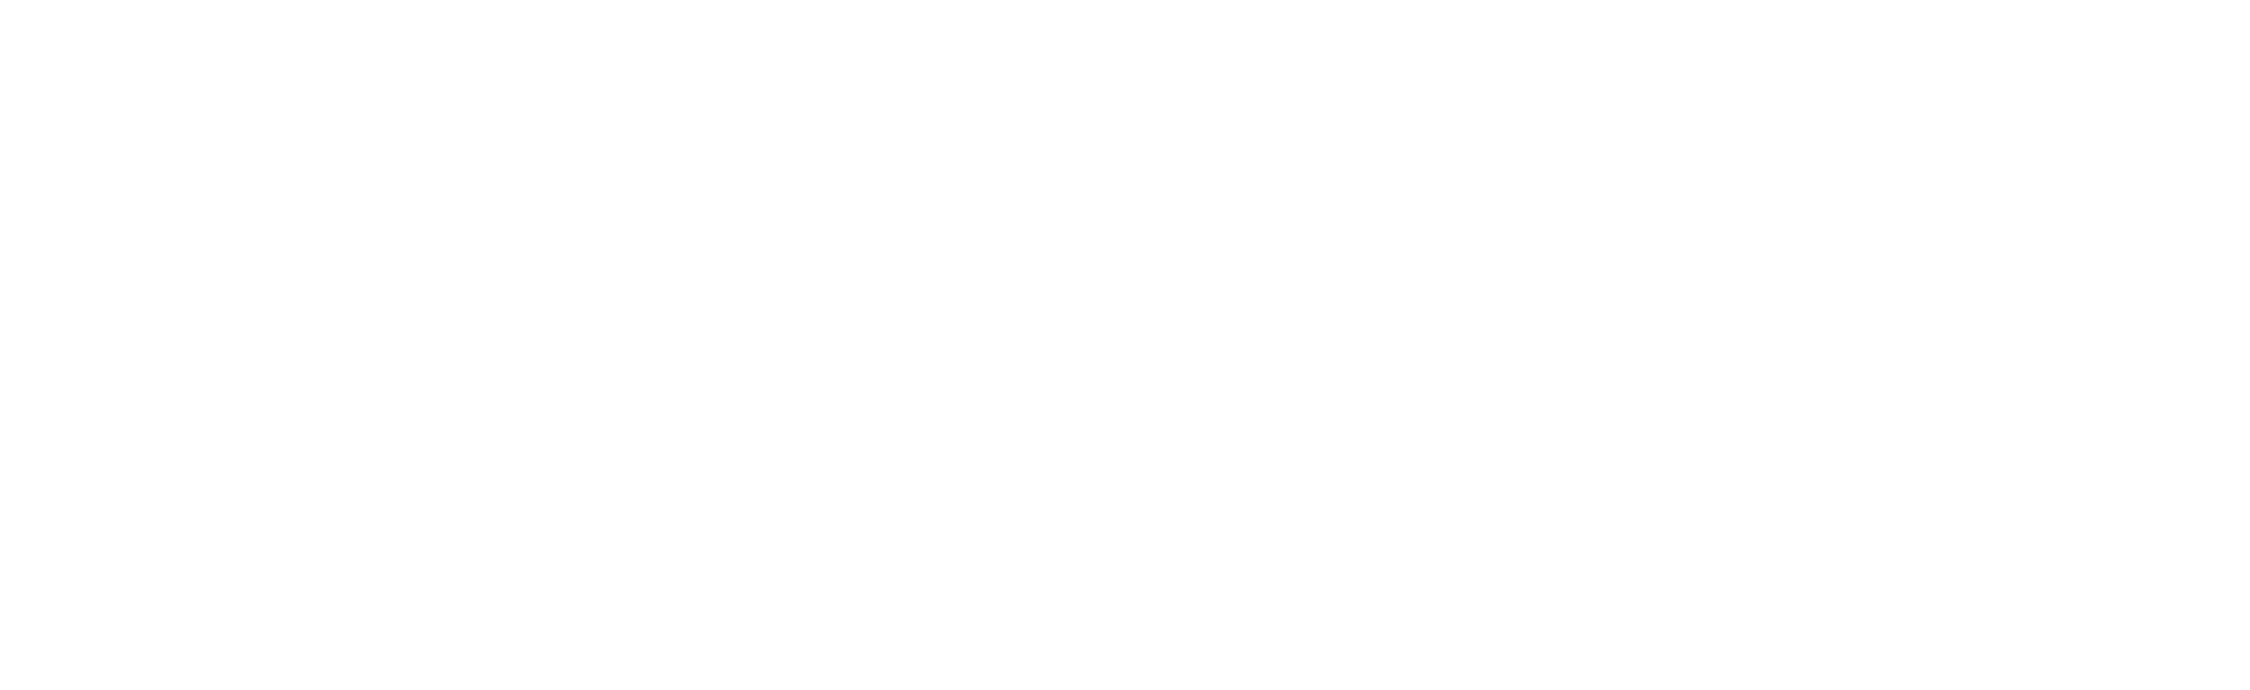 The Izaguirre Law Firm logo